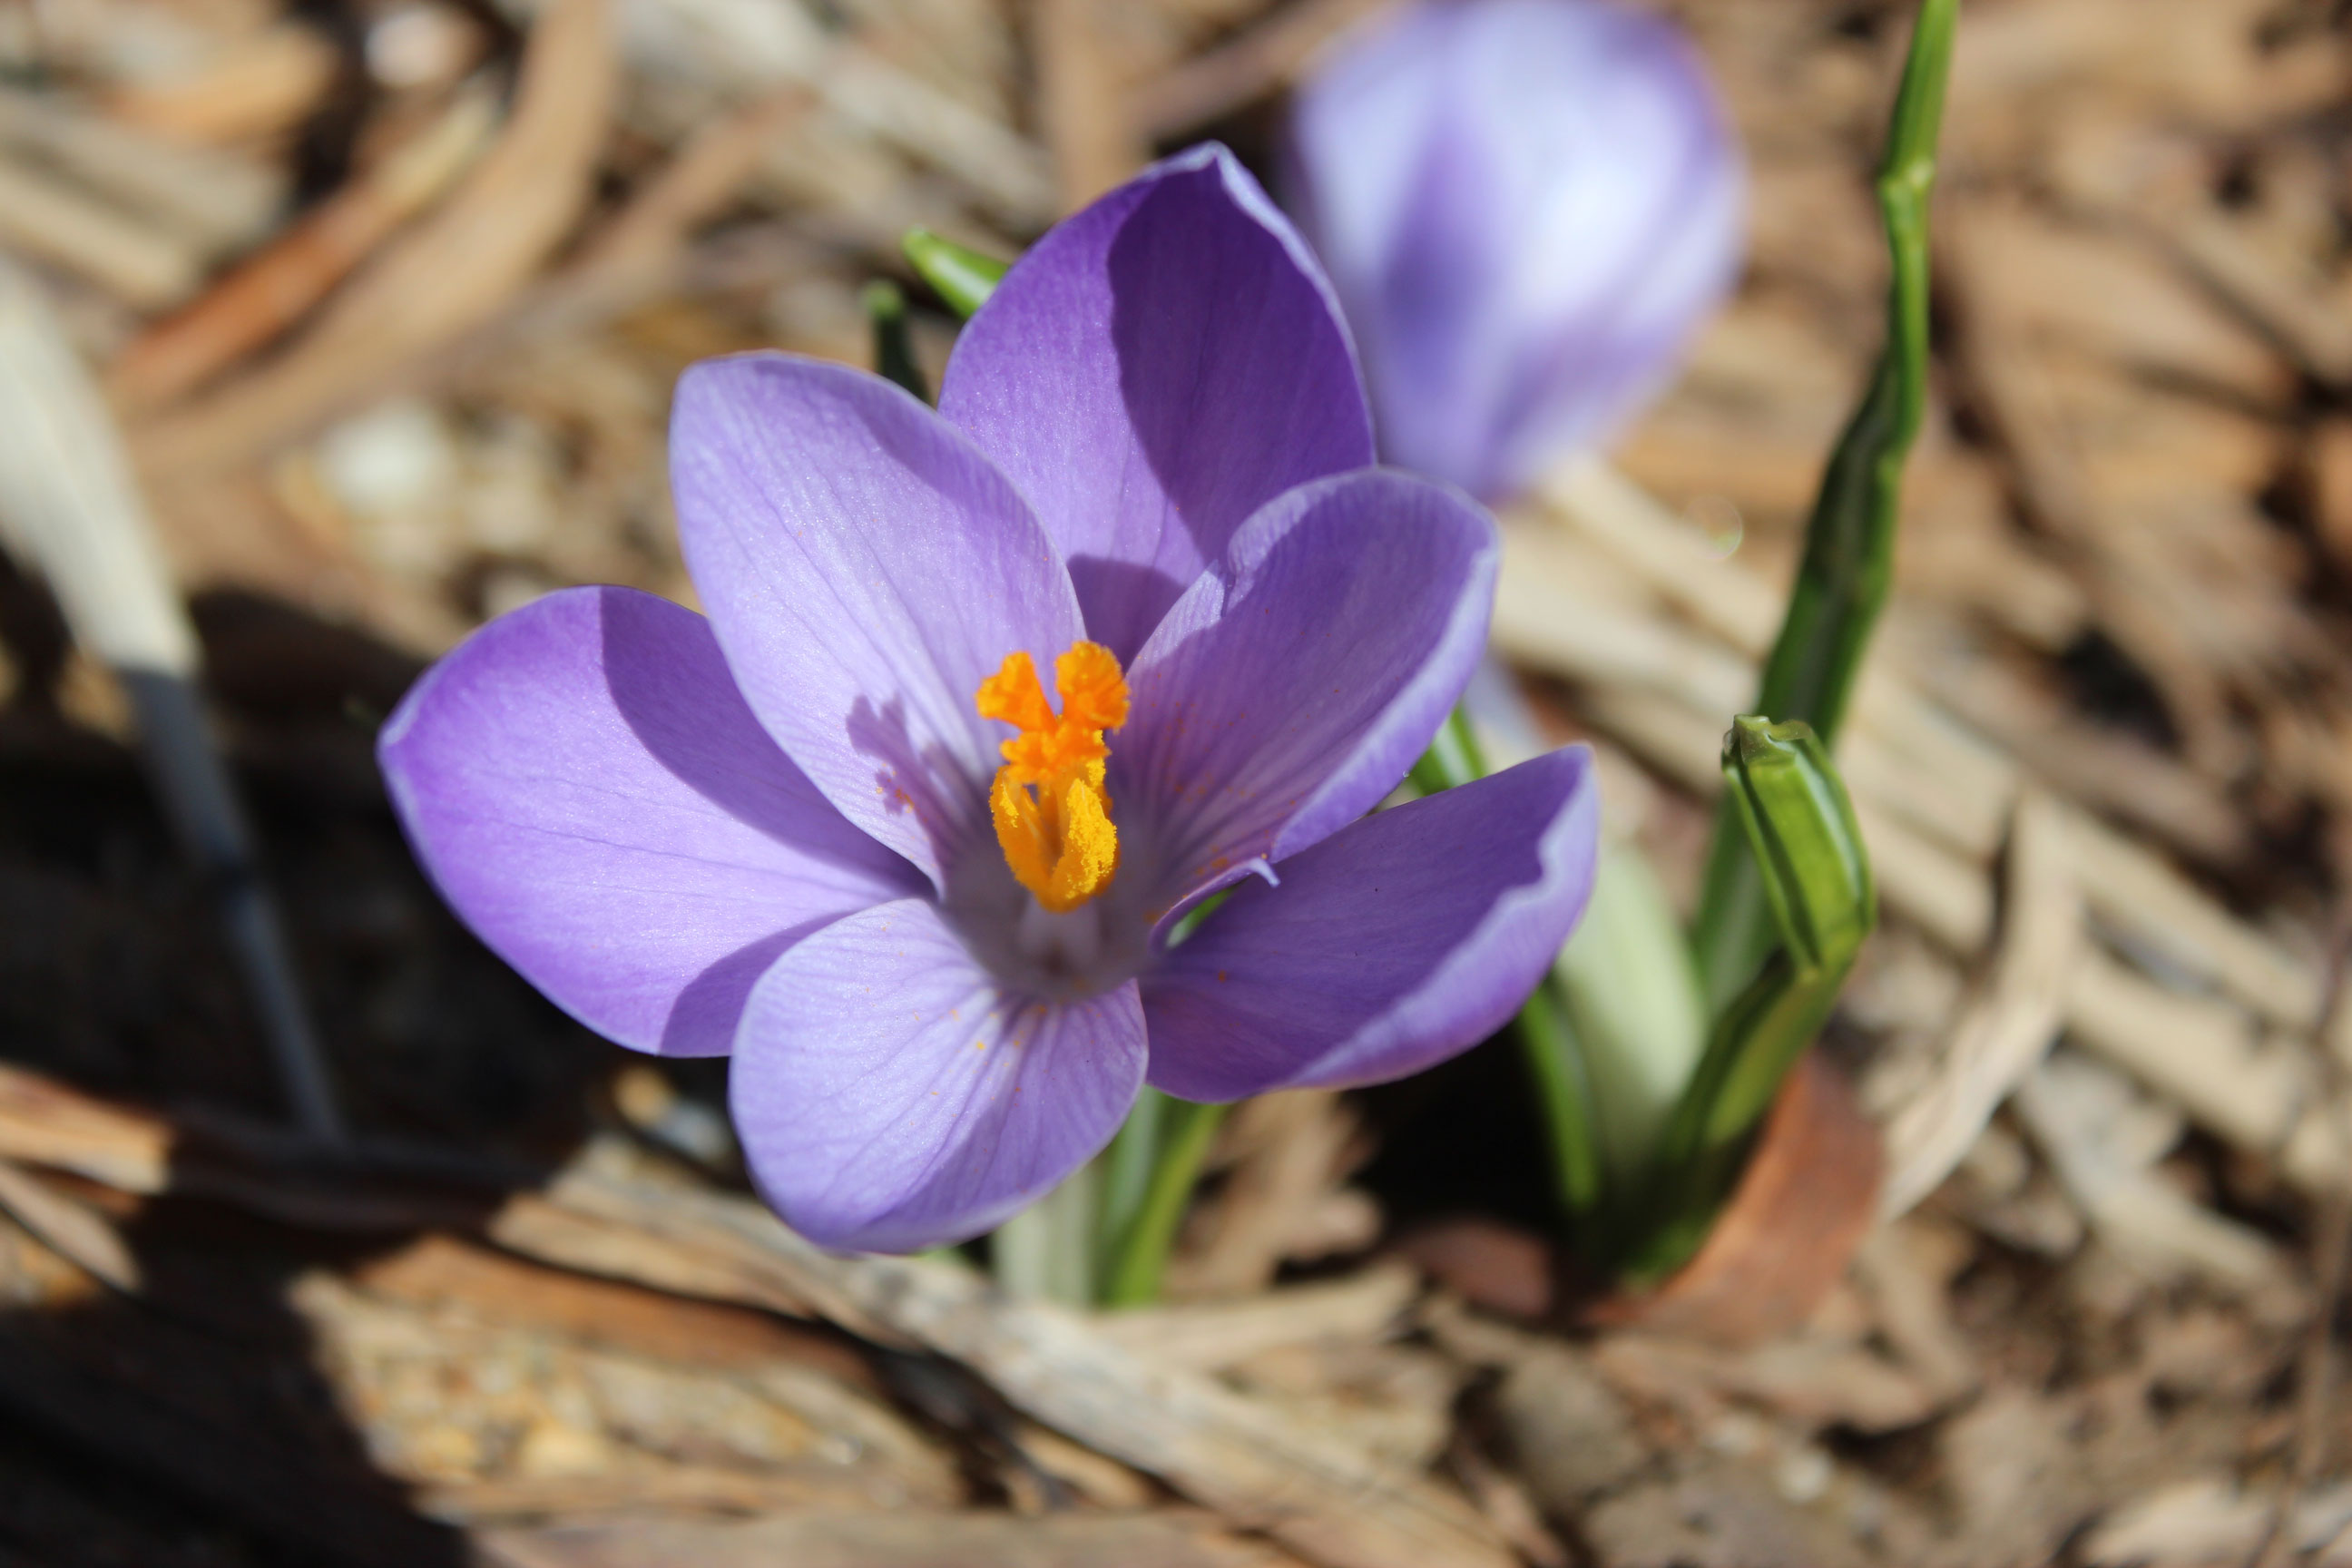 A crocus in spring